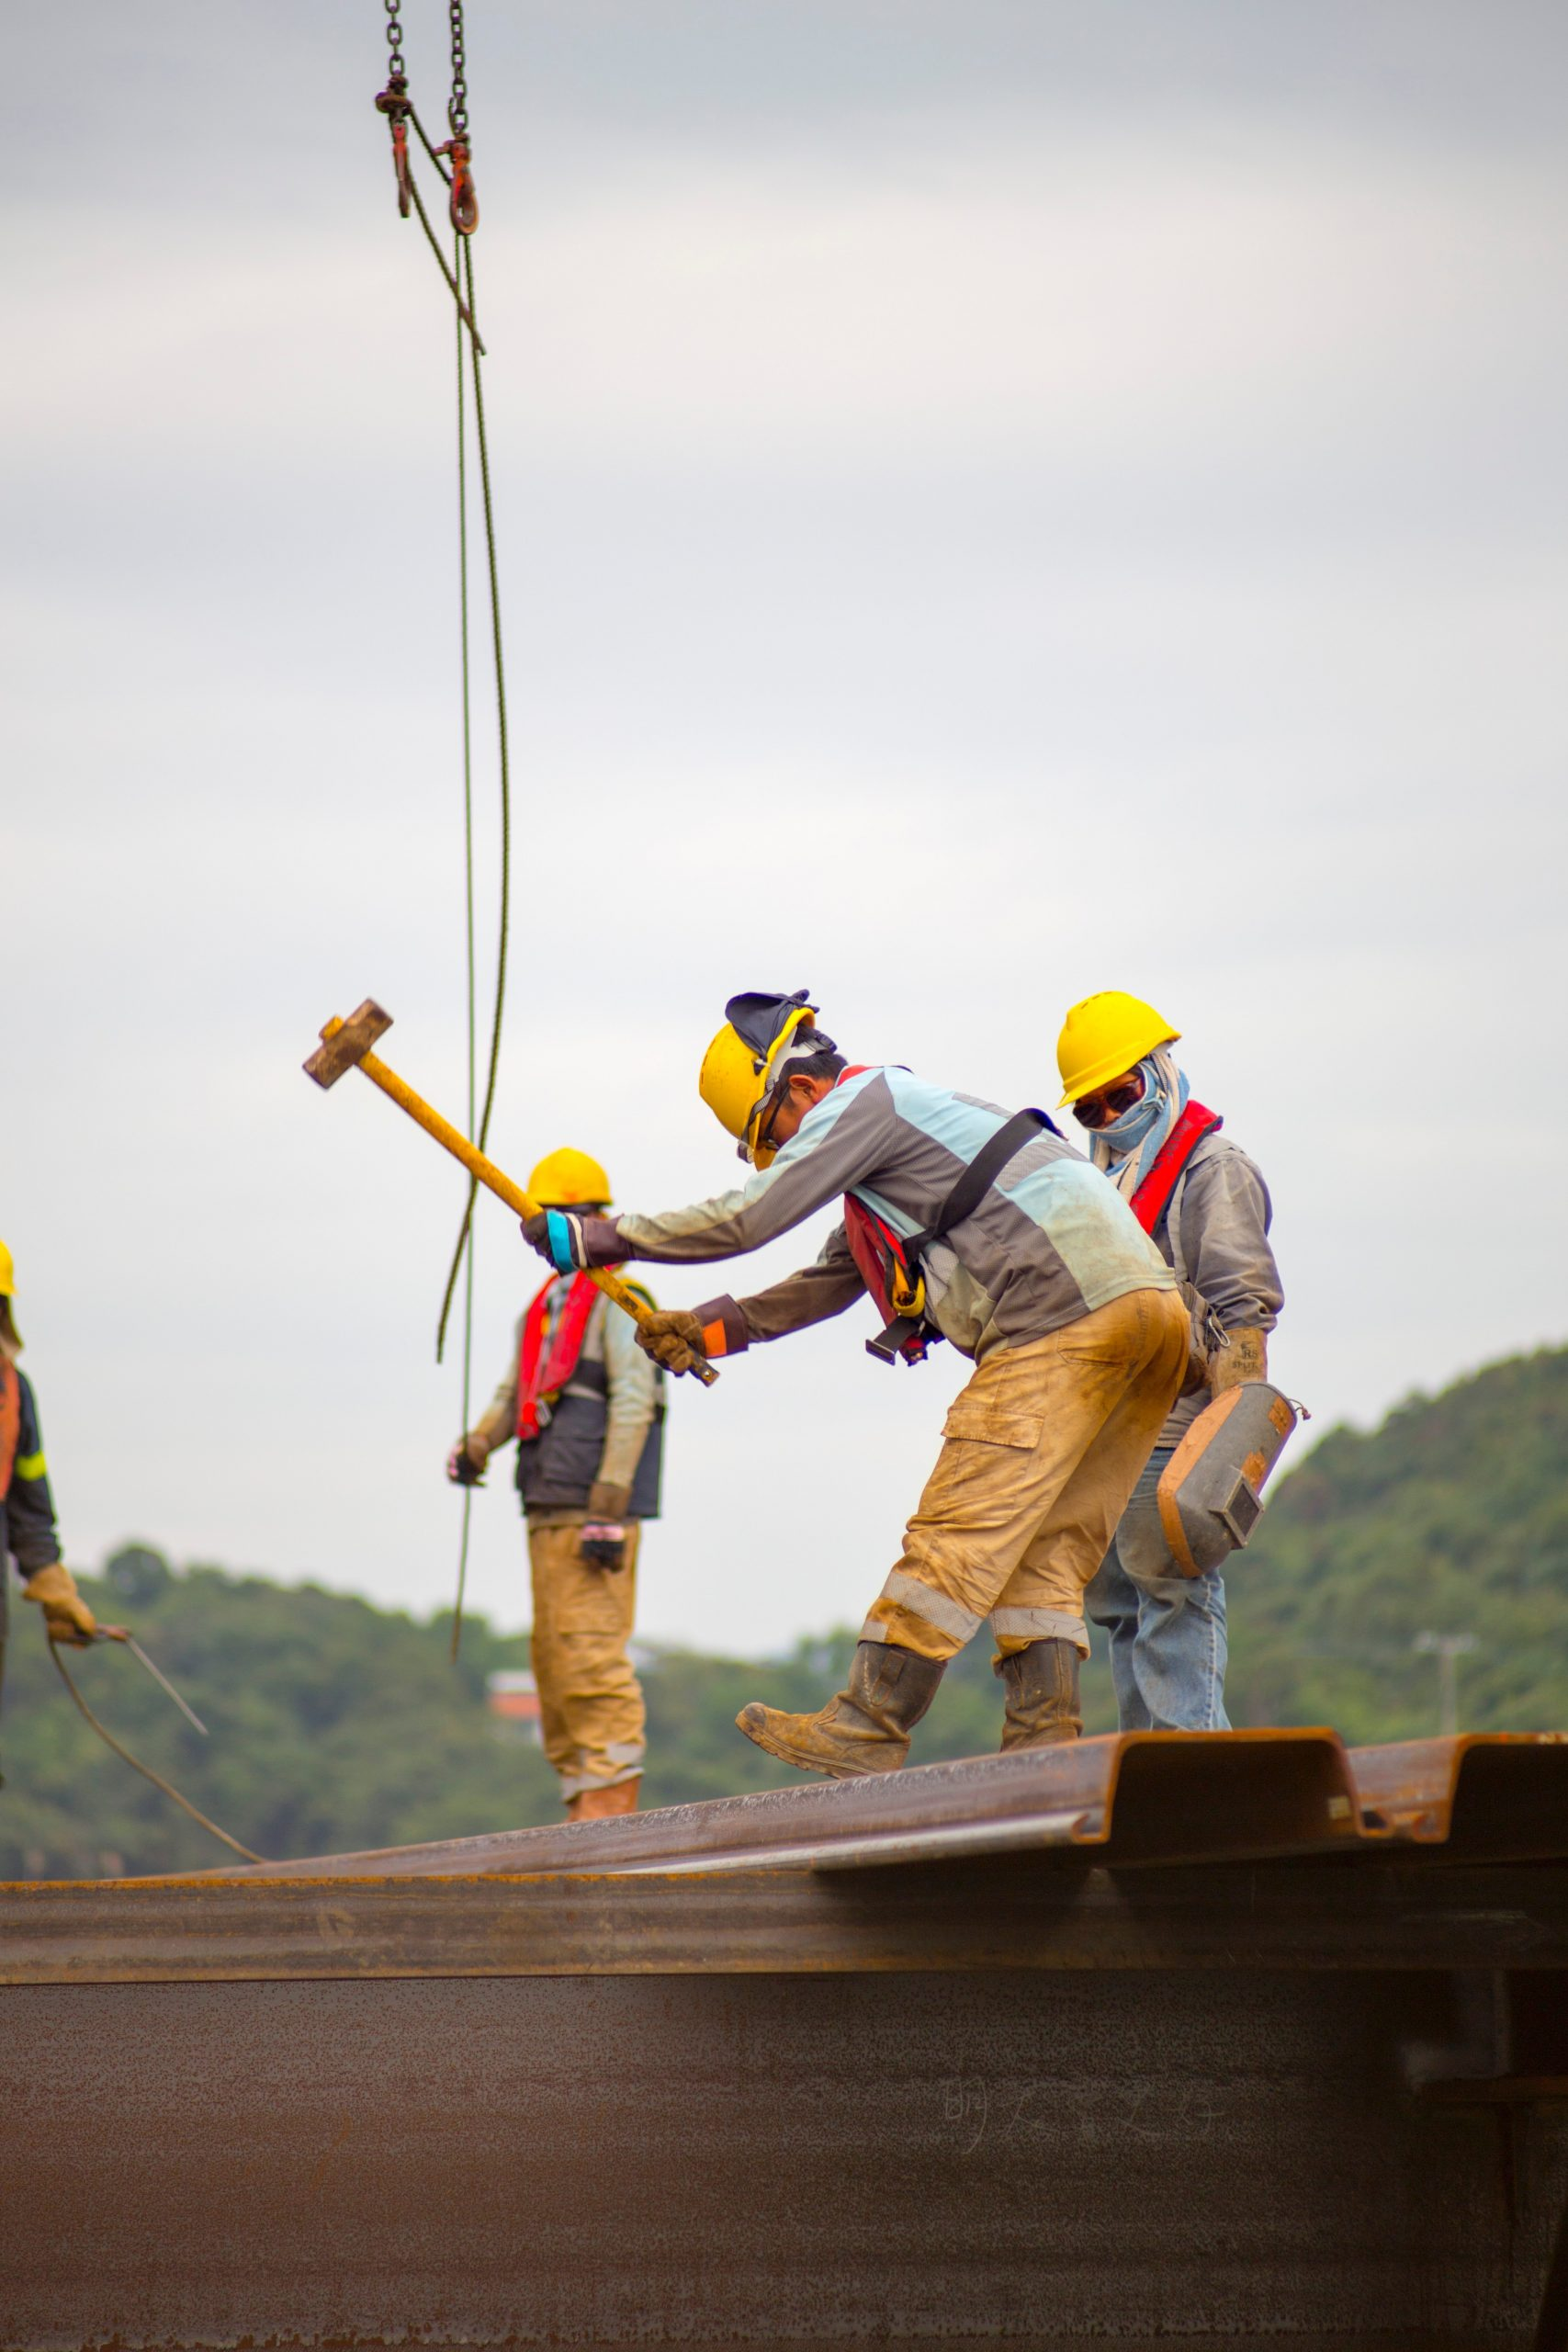 Workers on construction site